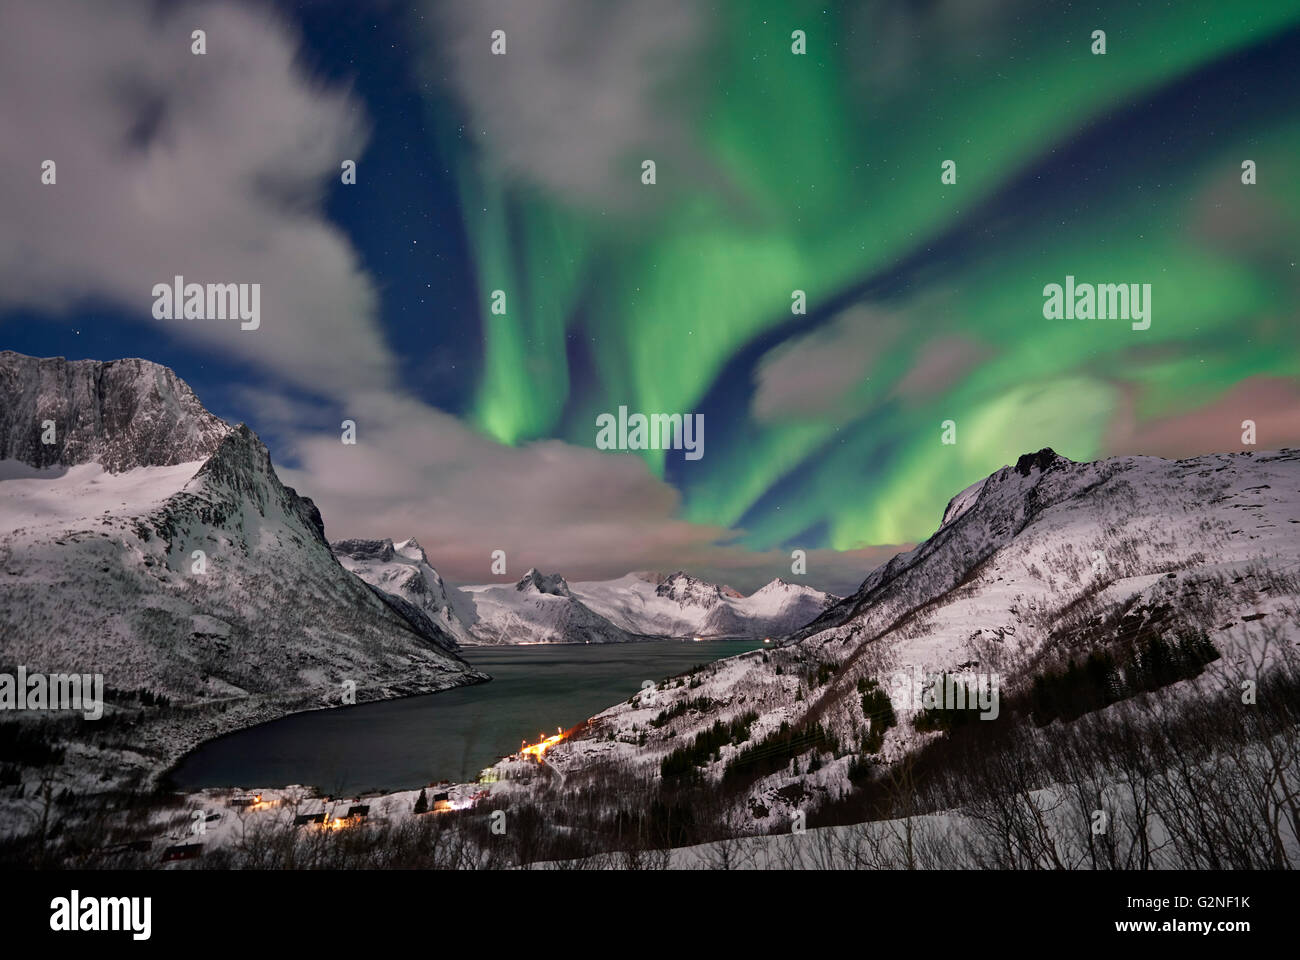 Aurora Borealis or northern lights over winter landscape in fjord of Mefjorden, Senja, Troms, Norway, Europe - Stock Image